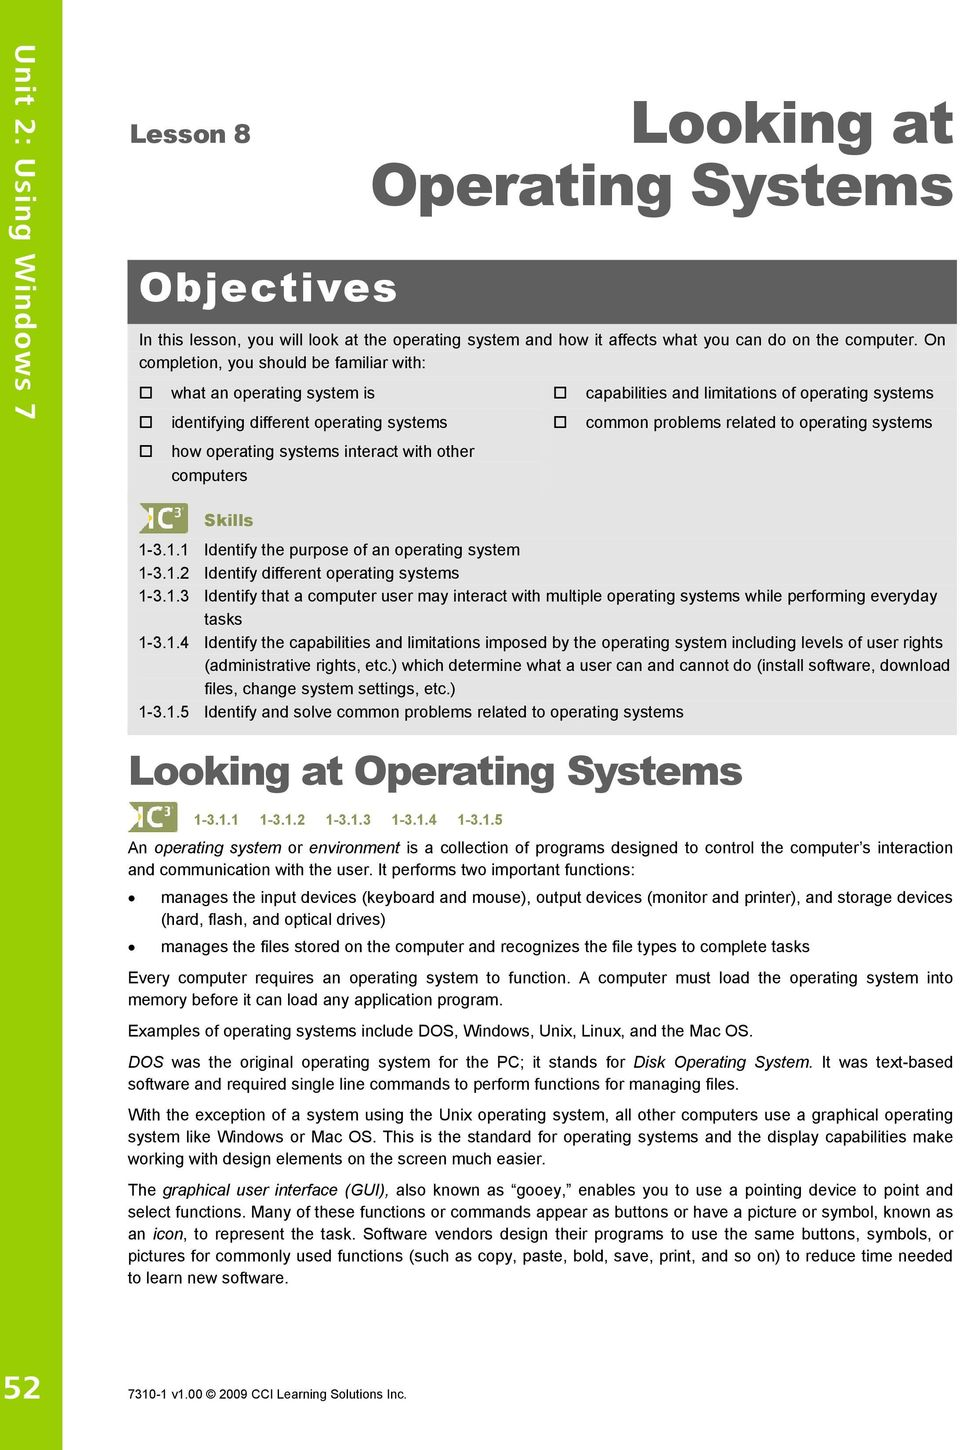 On completion, you should be familiar with: what an operating system is identifying different operating systems how operating systems interact with other computers Skills capabilities and limitations